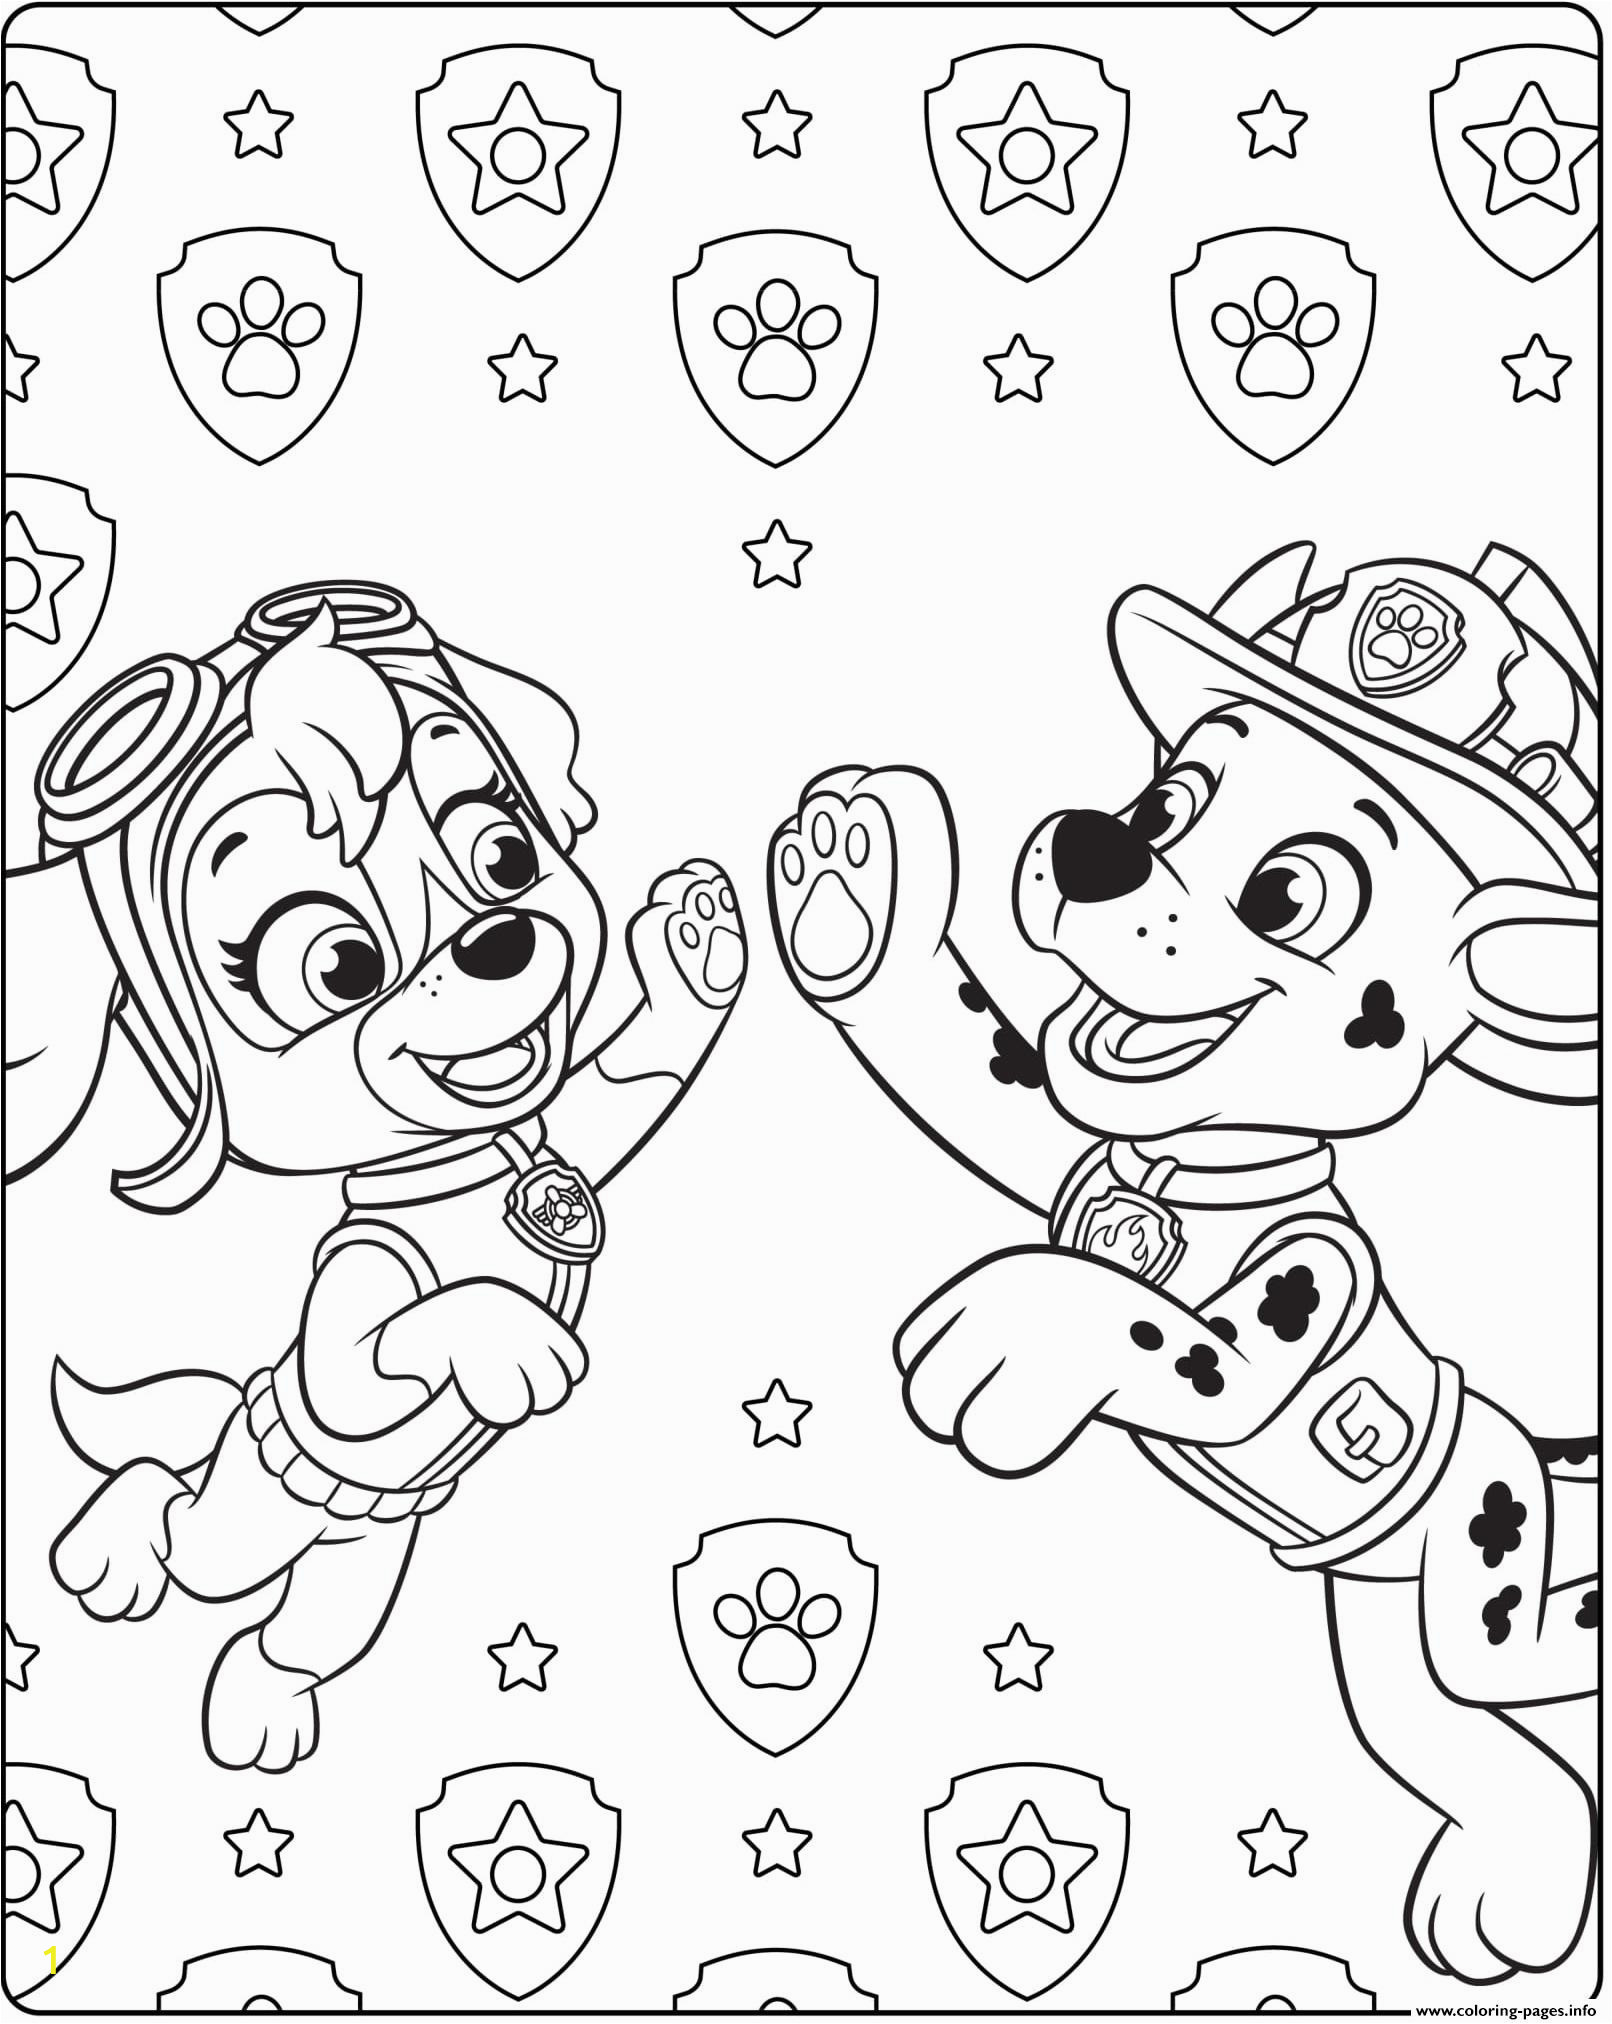 awesome paw patrol coloring pages skyedeas ultimate rescue marshall printable skye ideas from page colouring in and everest chase